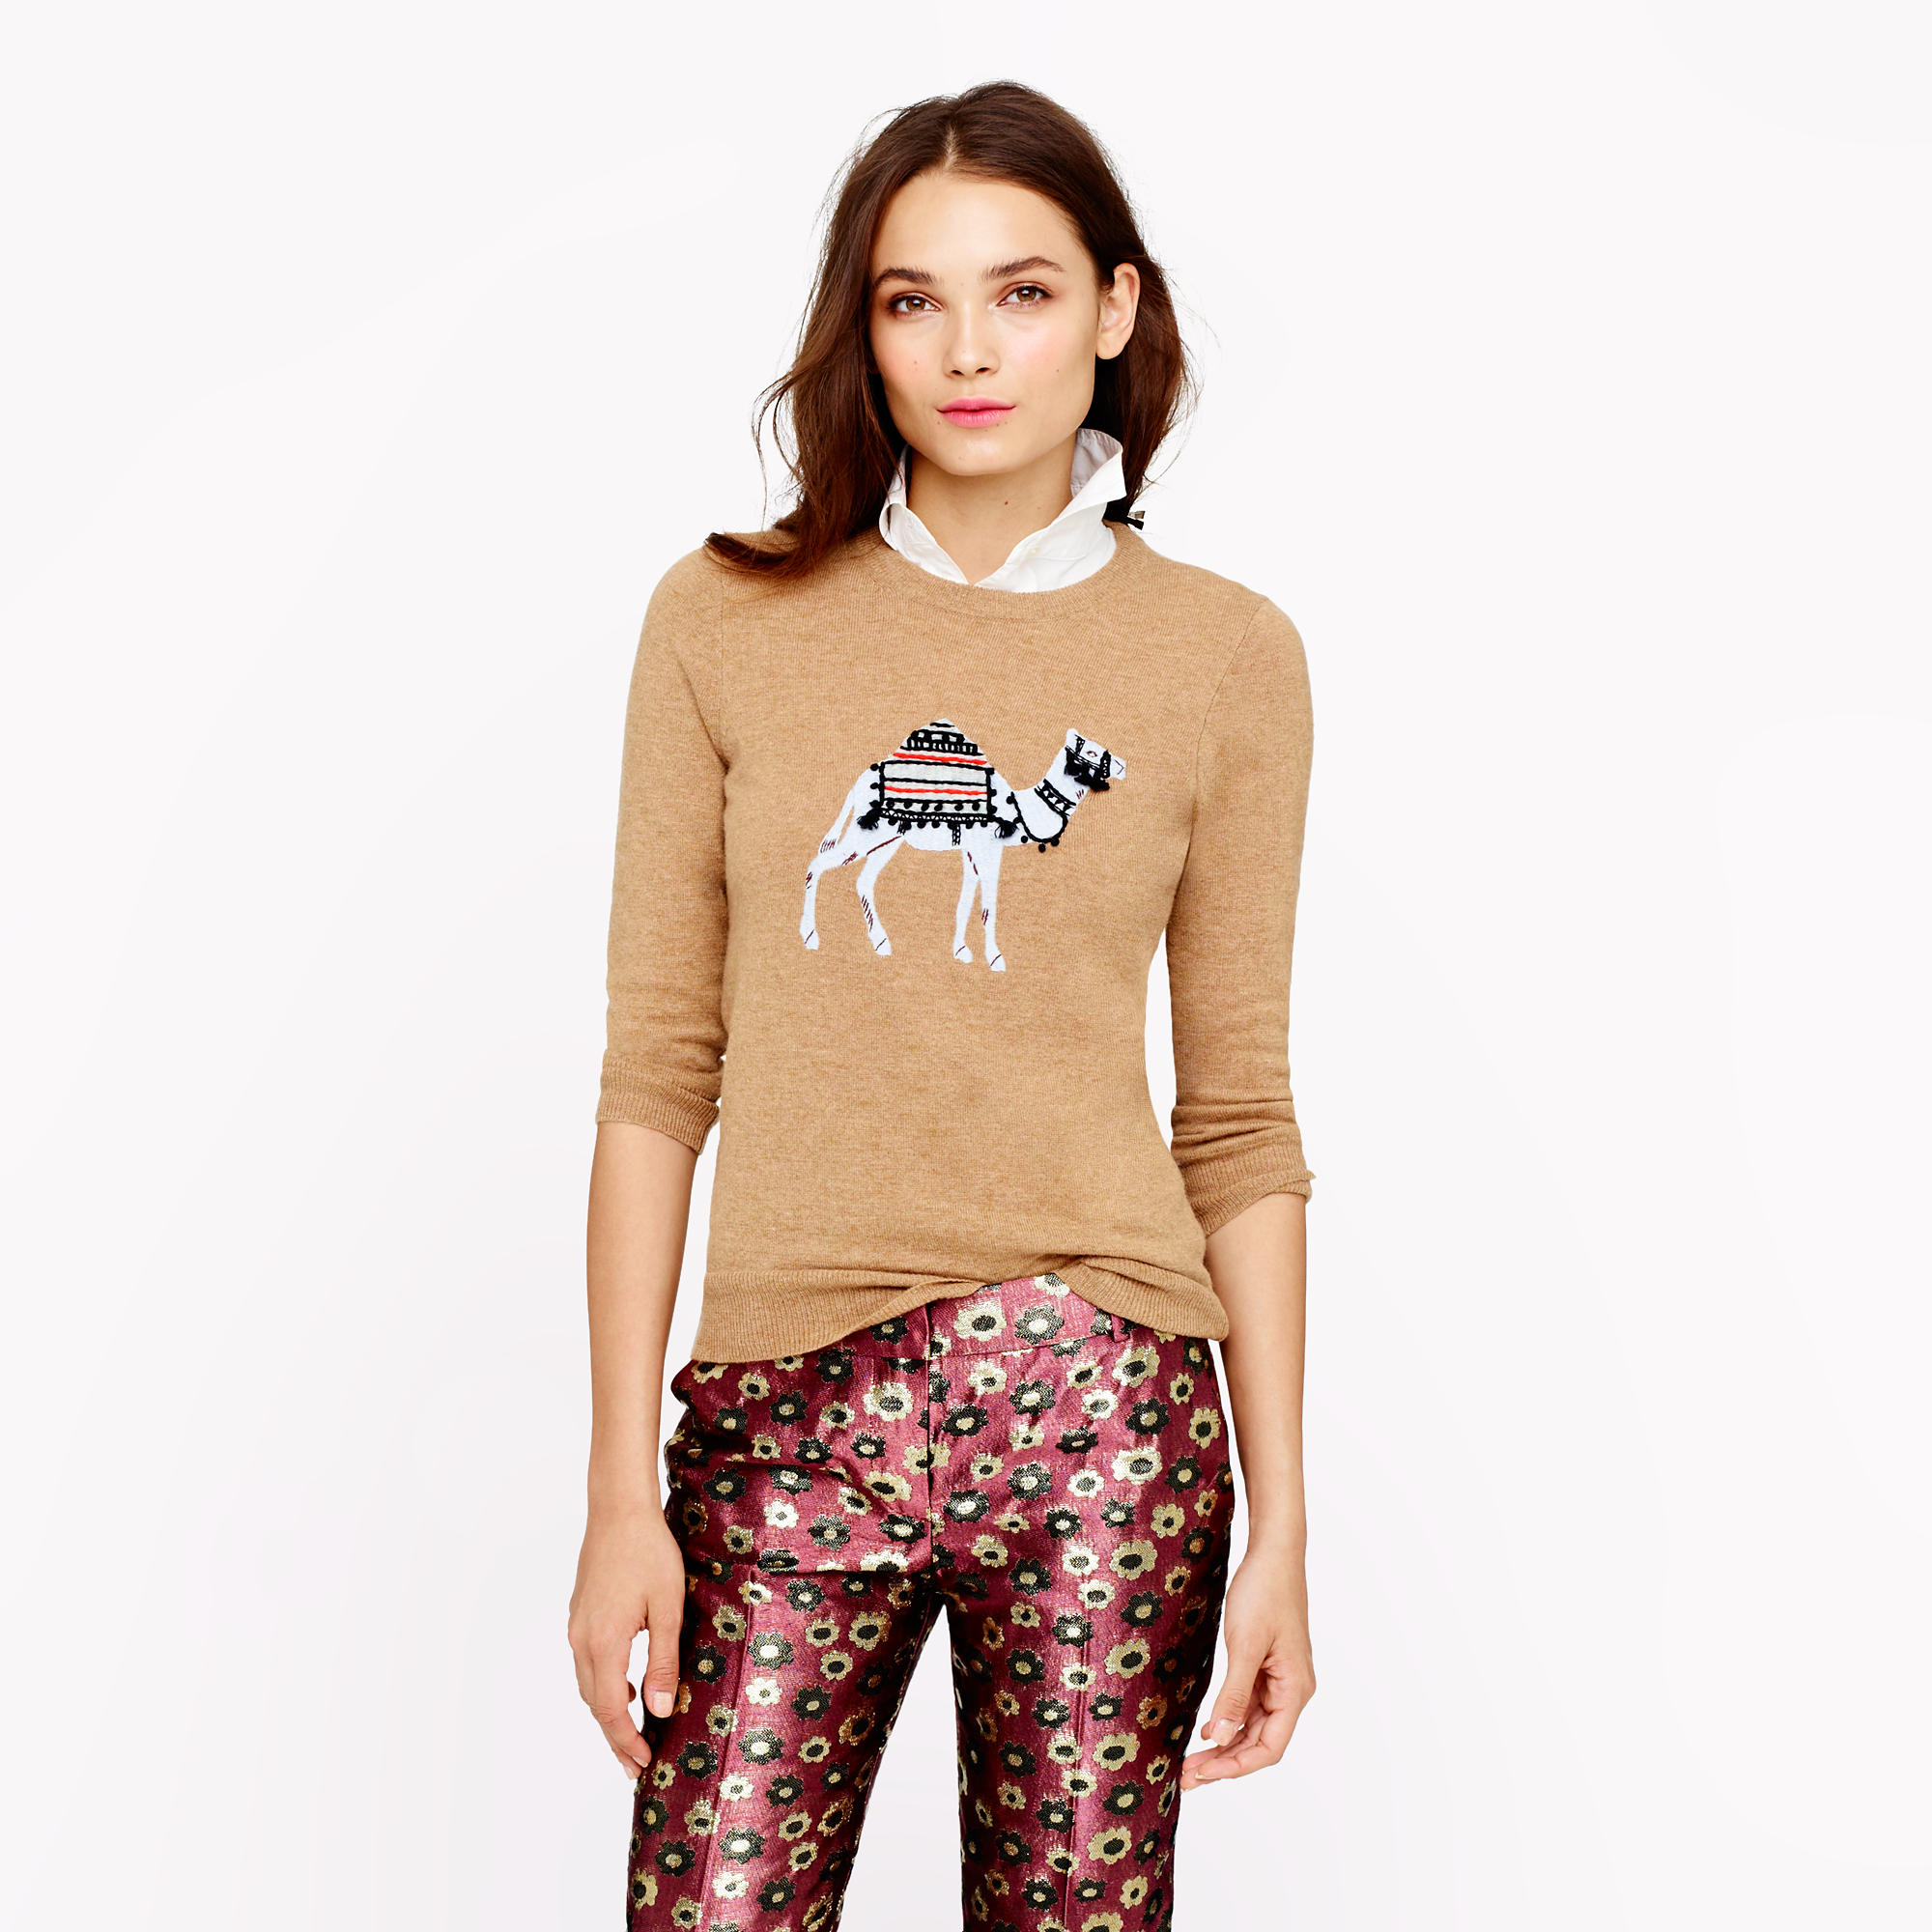 2681cf71c9f Images of Camel Sweater - All about Fashions